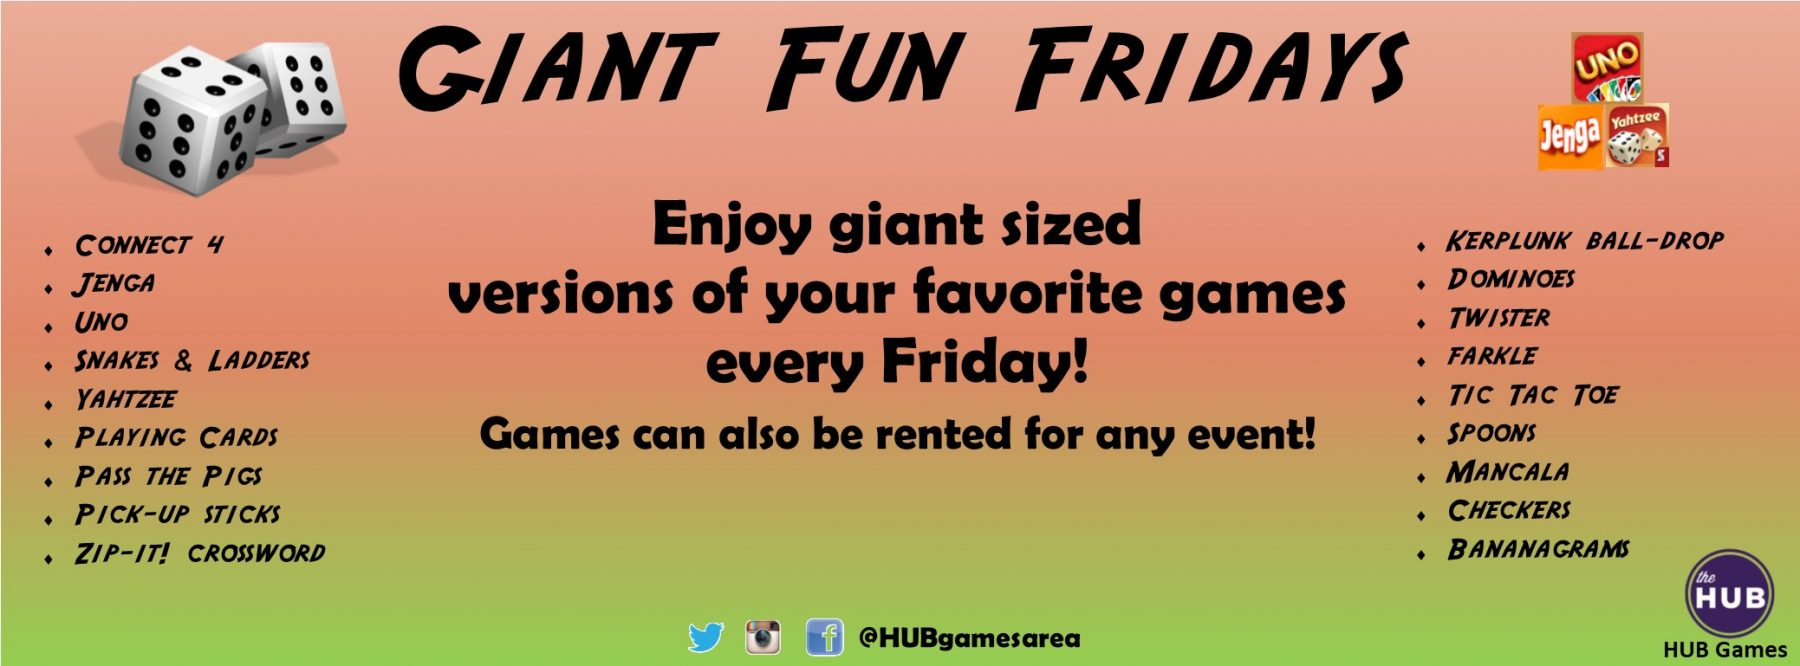 Giant Fun Fridays Web Banner